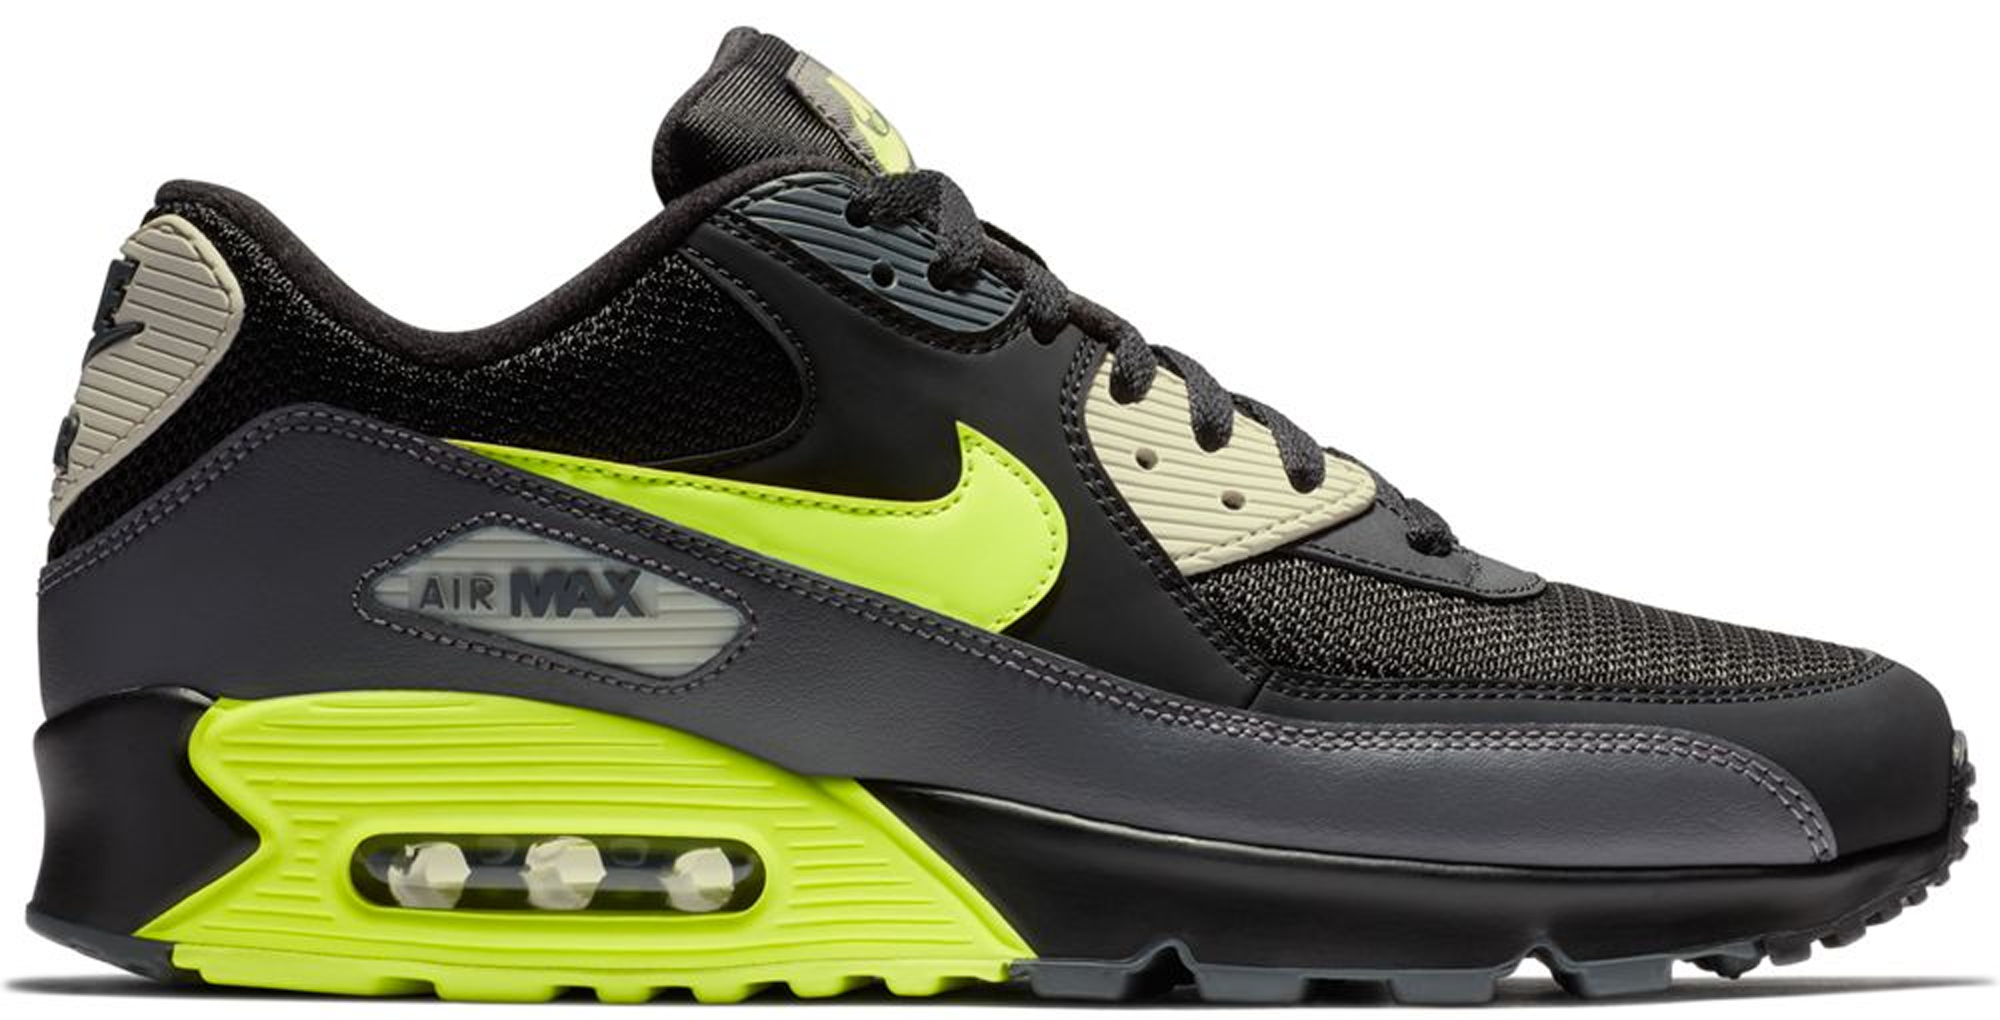 Air Max 90 Dark Grey Black Volt